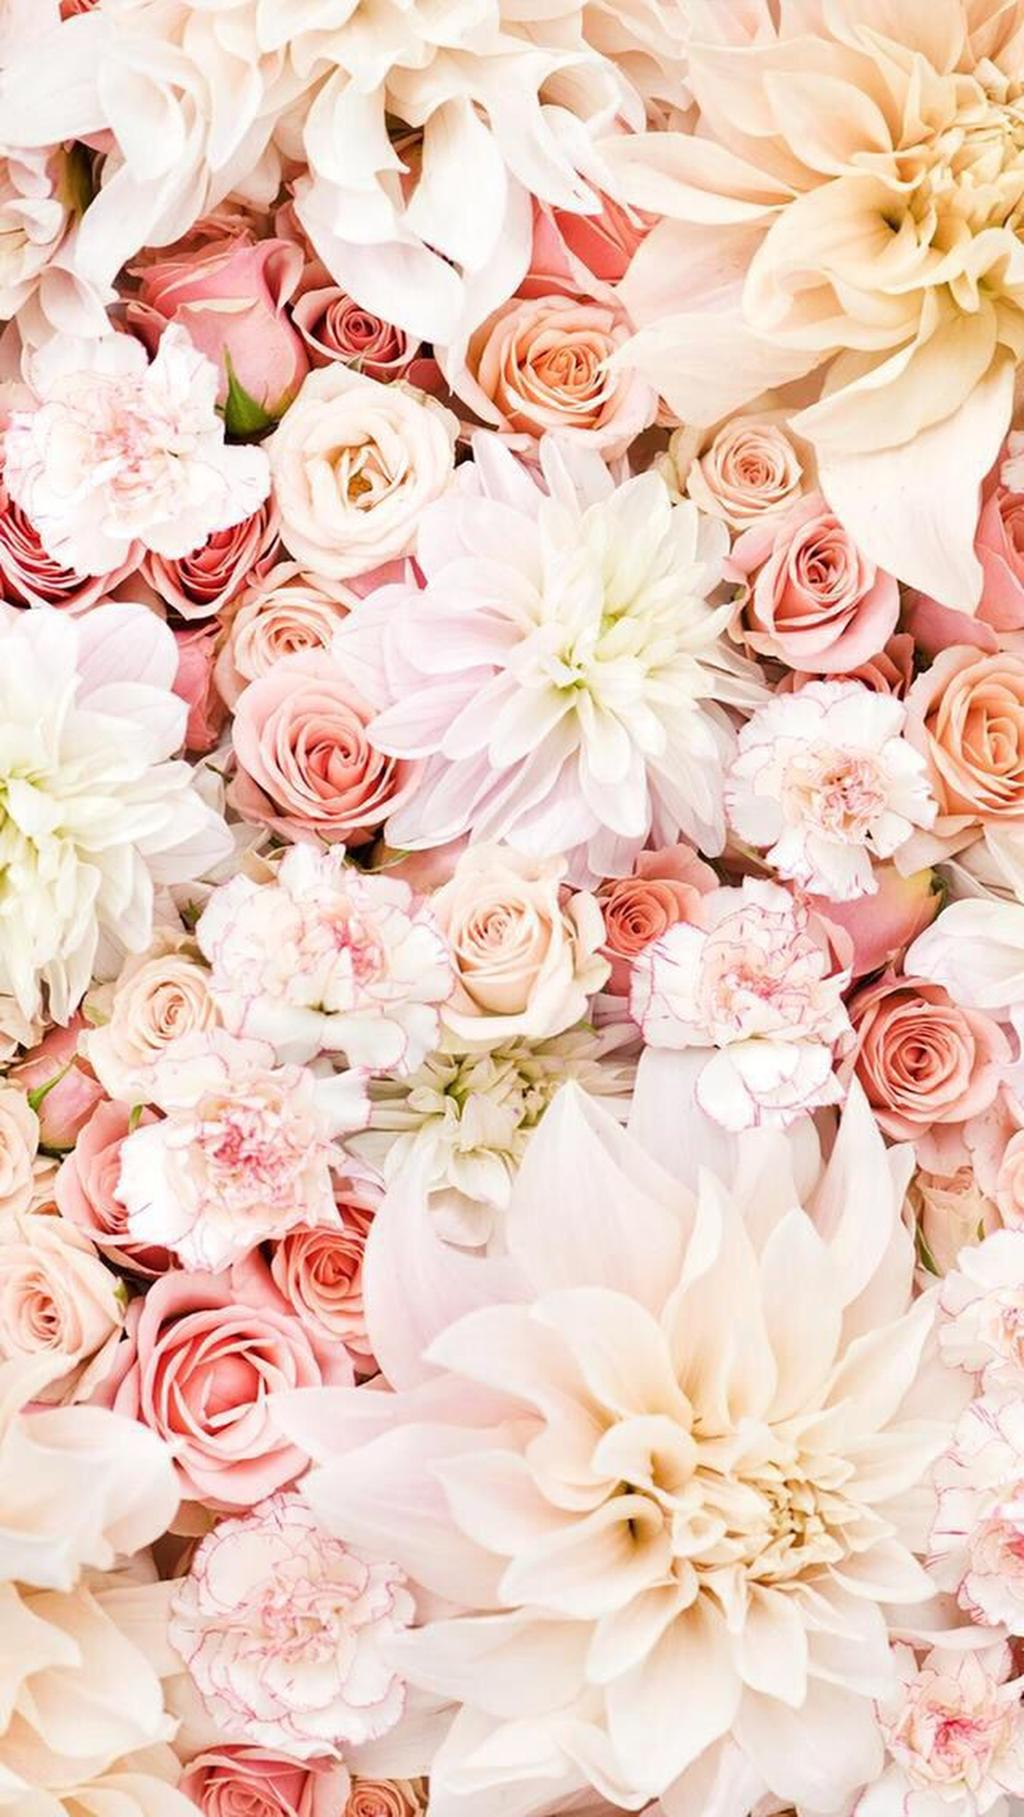 1024x1817 39950+ Floral Iphone Wallpaper ☆ Follow Prettywallpaper For More ...